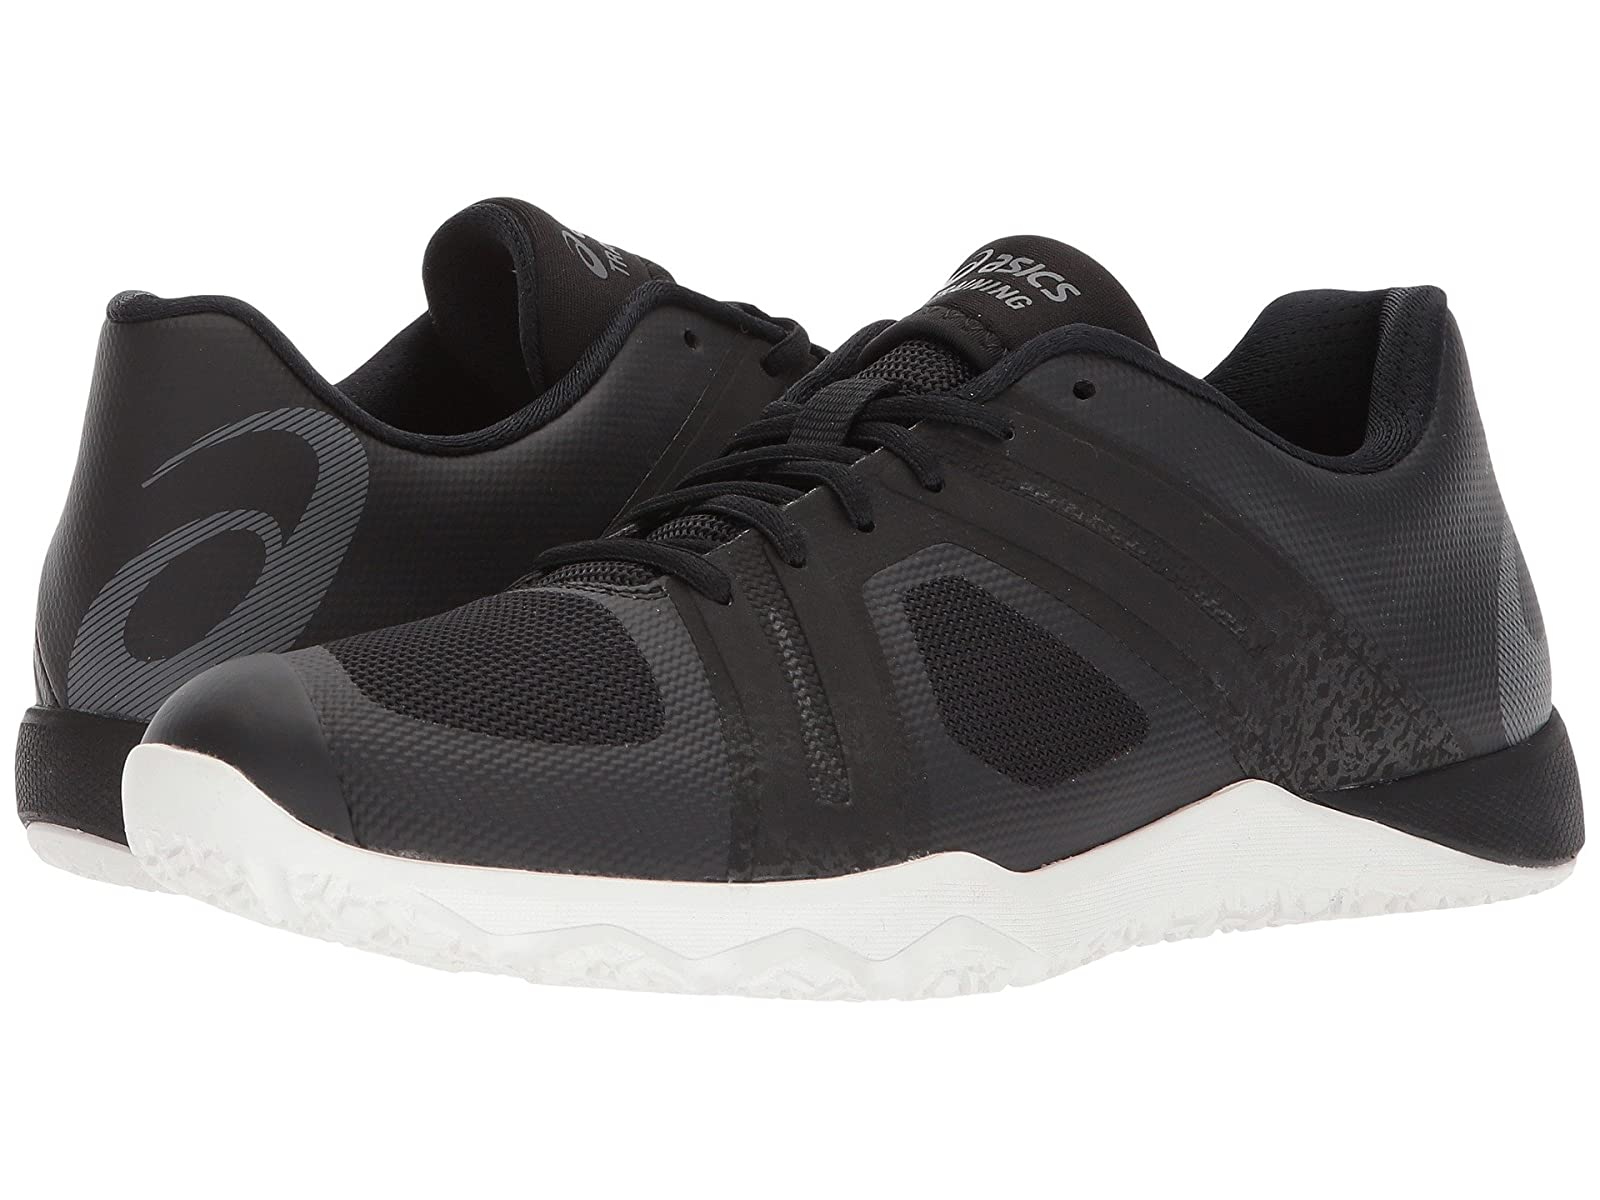 ASICS Conviction X 2Atmospheric grades have affordable shoes